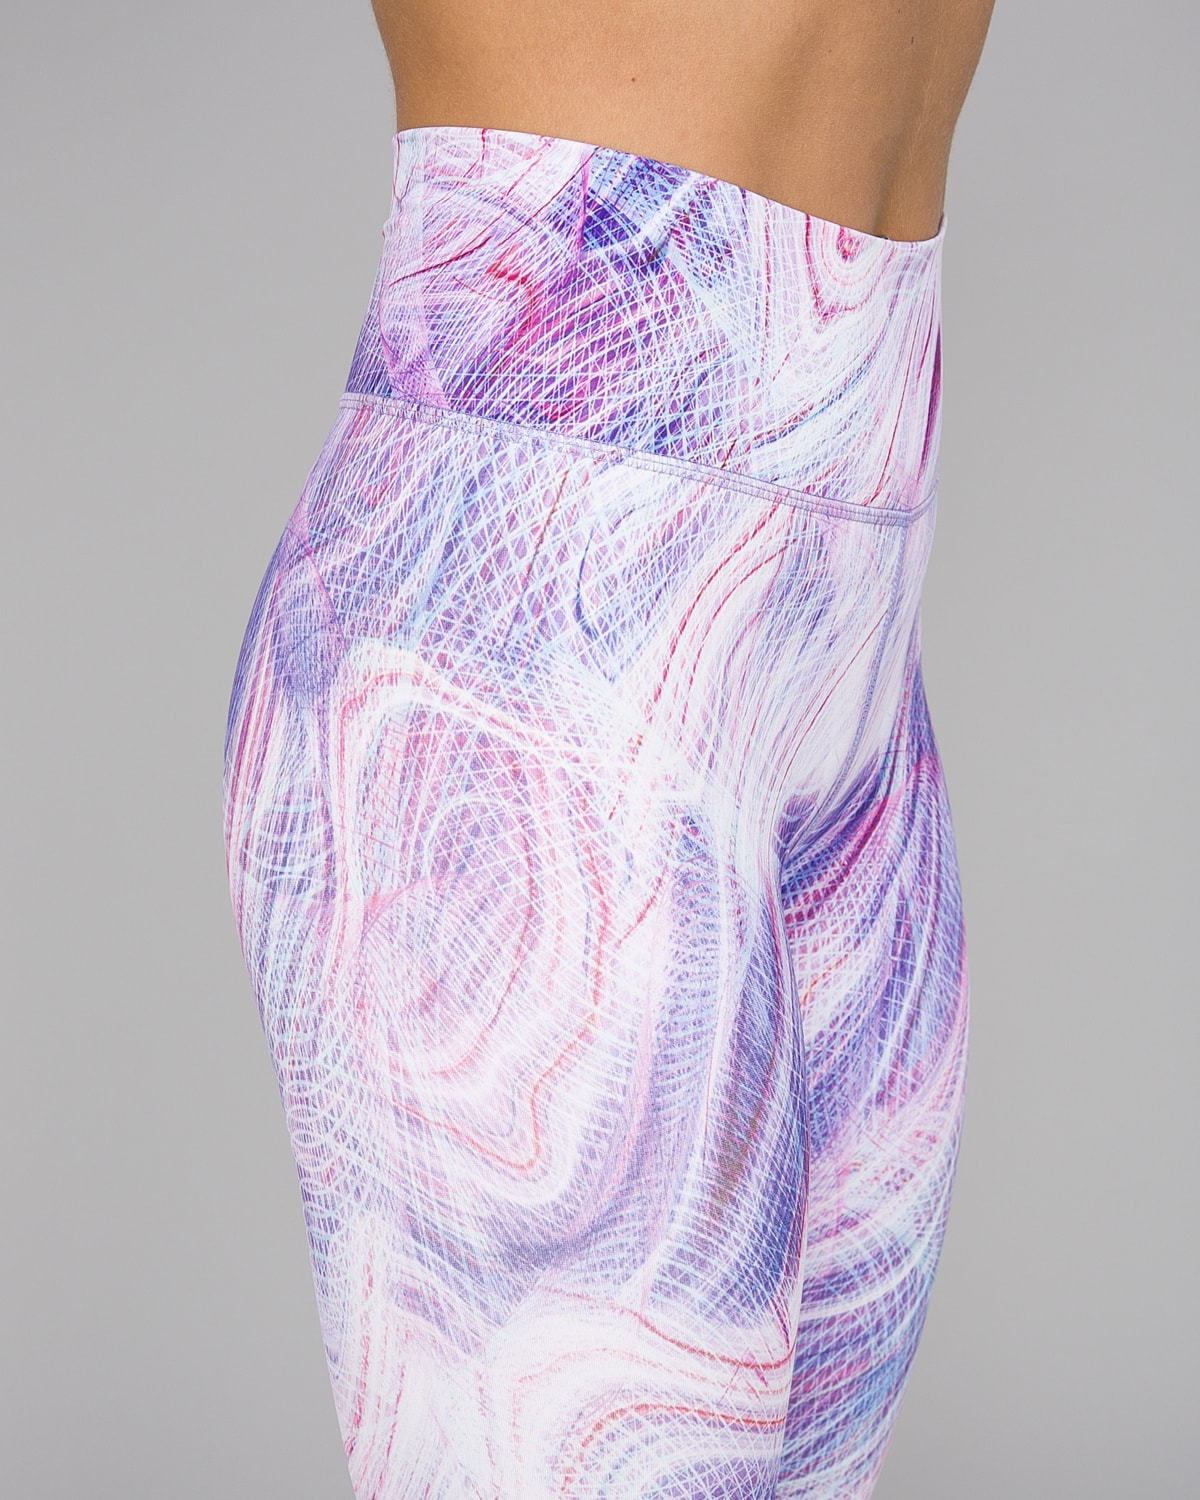 LEVITY Space Mineral Tights12